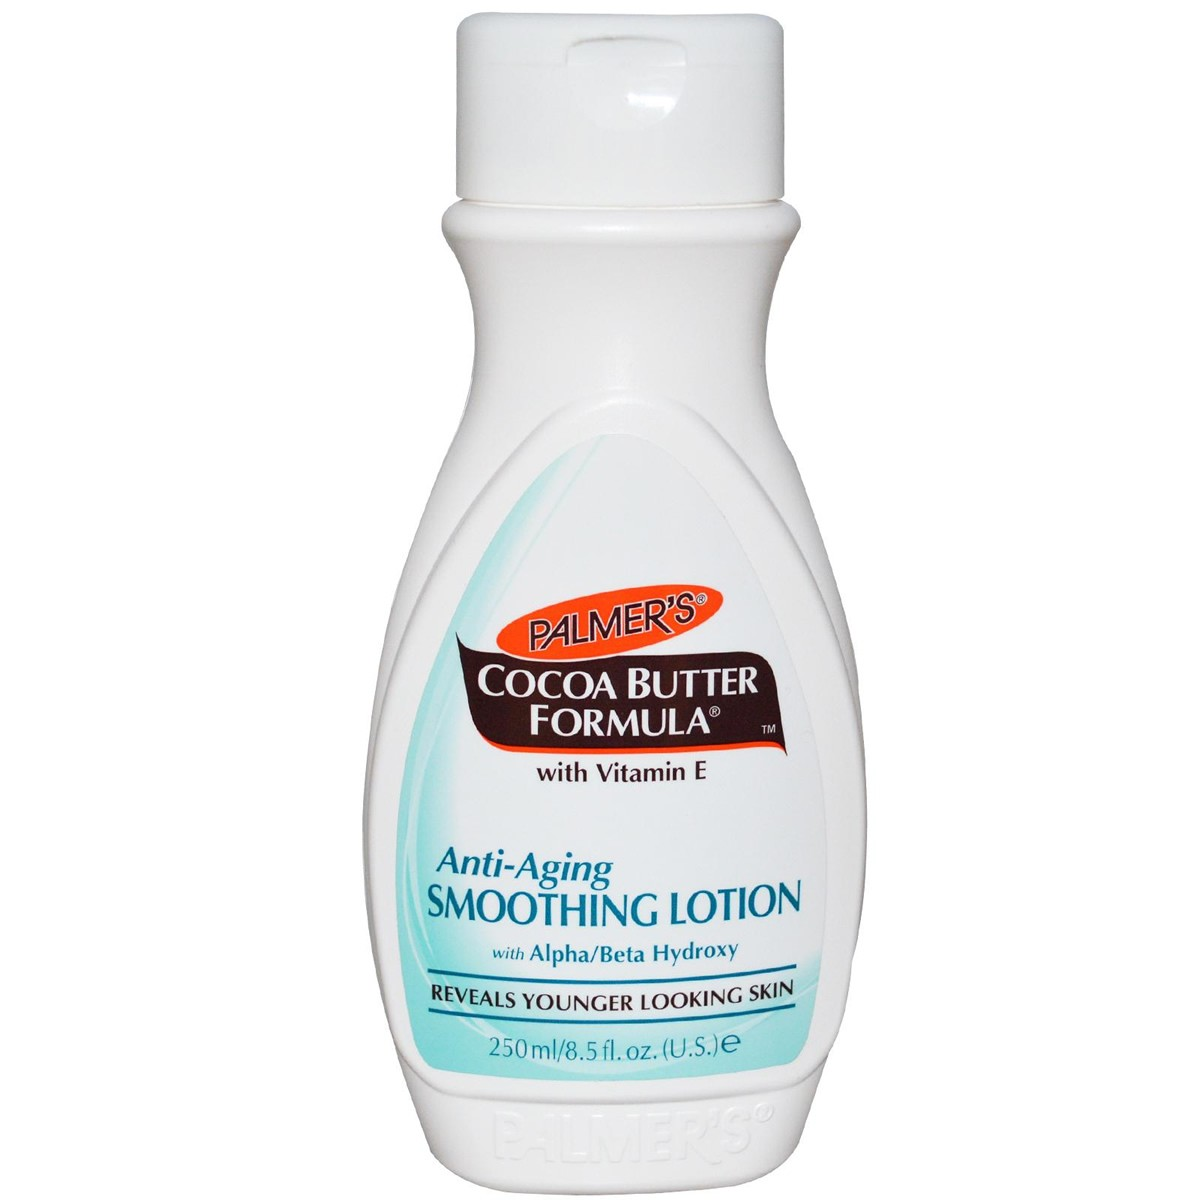 Palmer's Cocoa Butter Formula Anti-Aging Smoothing Lotion with Alpha/Beta Hydroxy